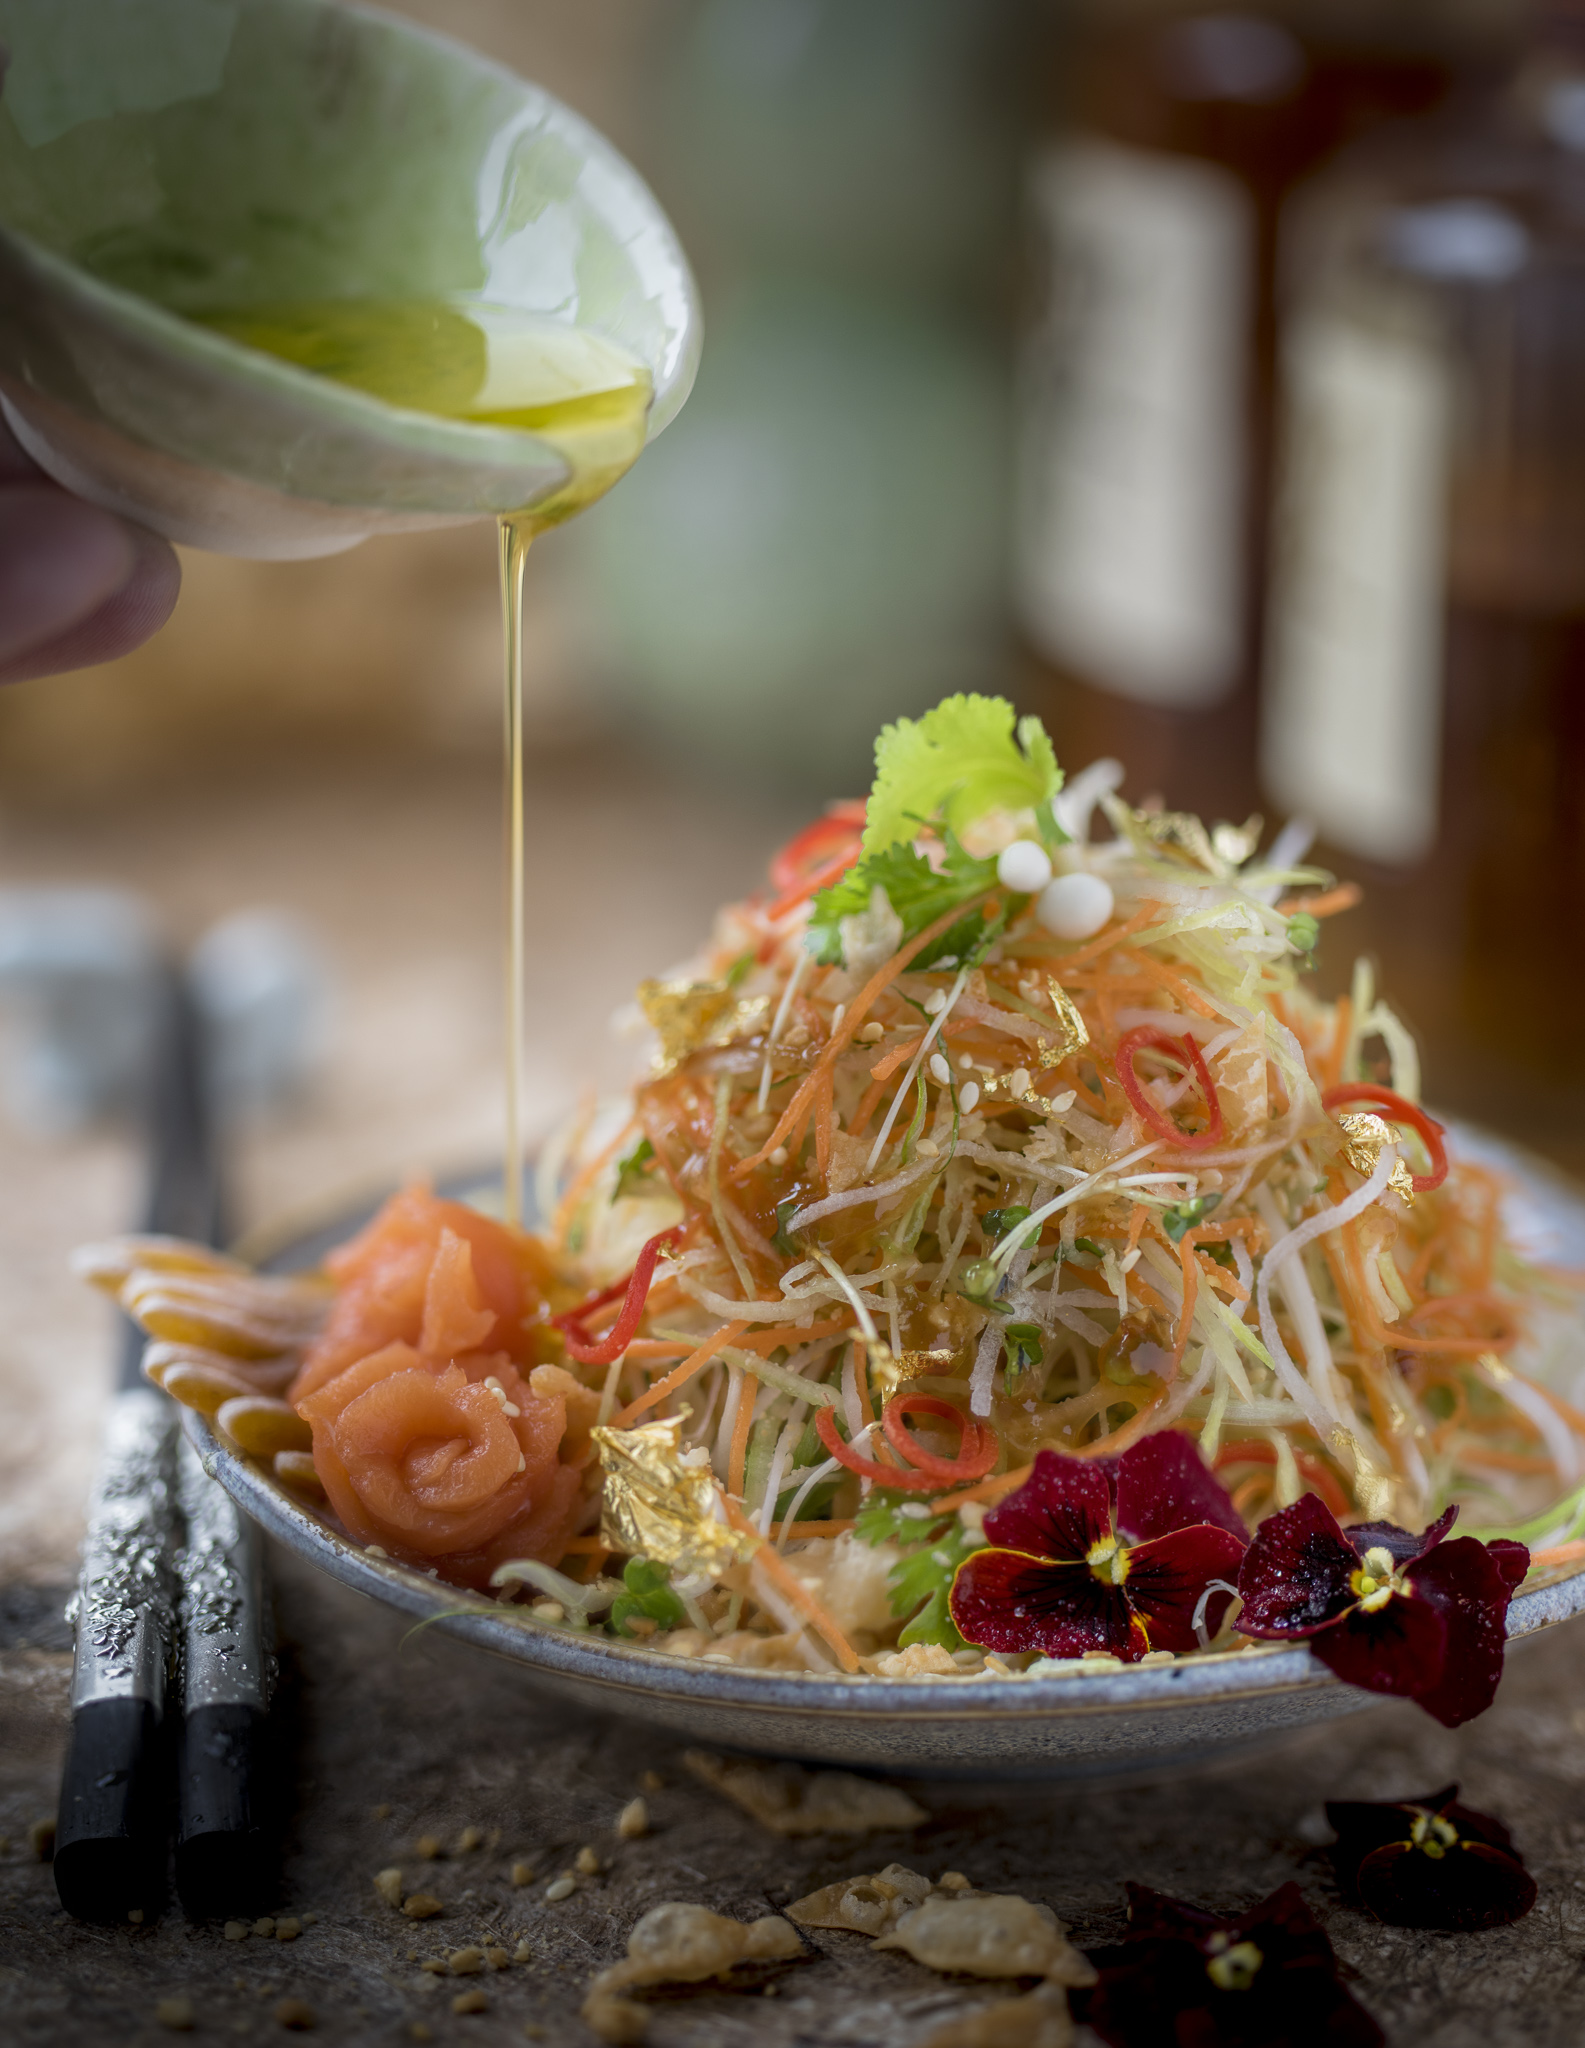 Marvelous Kai Mayfair With Luxury Yee Sang Chinese New Year Salad Ajpg With Amusing The Gardener By Rudyard Kipling Also Herb Garden Designs In Addition Primerose Garden And Garden Flowers India As Well As Moon Garden Additionally Quality Garden Shears From Kaimayfaircouk With   Luxury Kai Mayfair With Amusing Yee Sang Chinese New Year Salad Ajpg And Marvelous The Gardener By Rudyard Kipling Also Herb Garden Designs In Addition Primerose Garden From Kaimayfaircouk